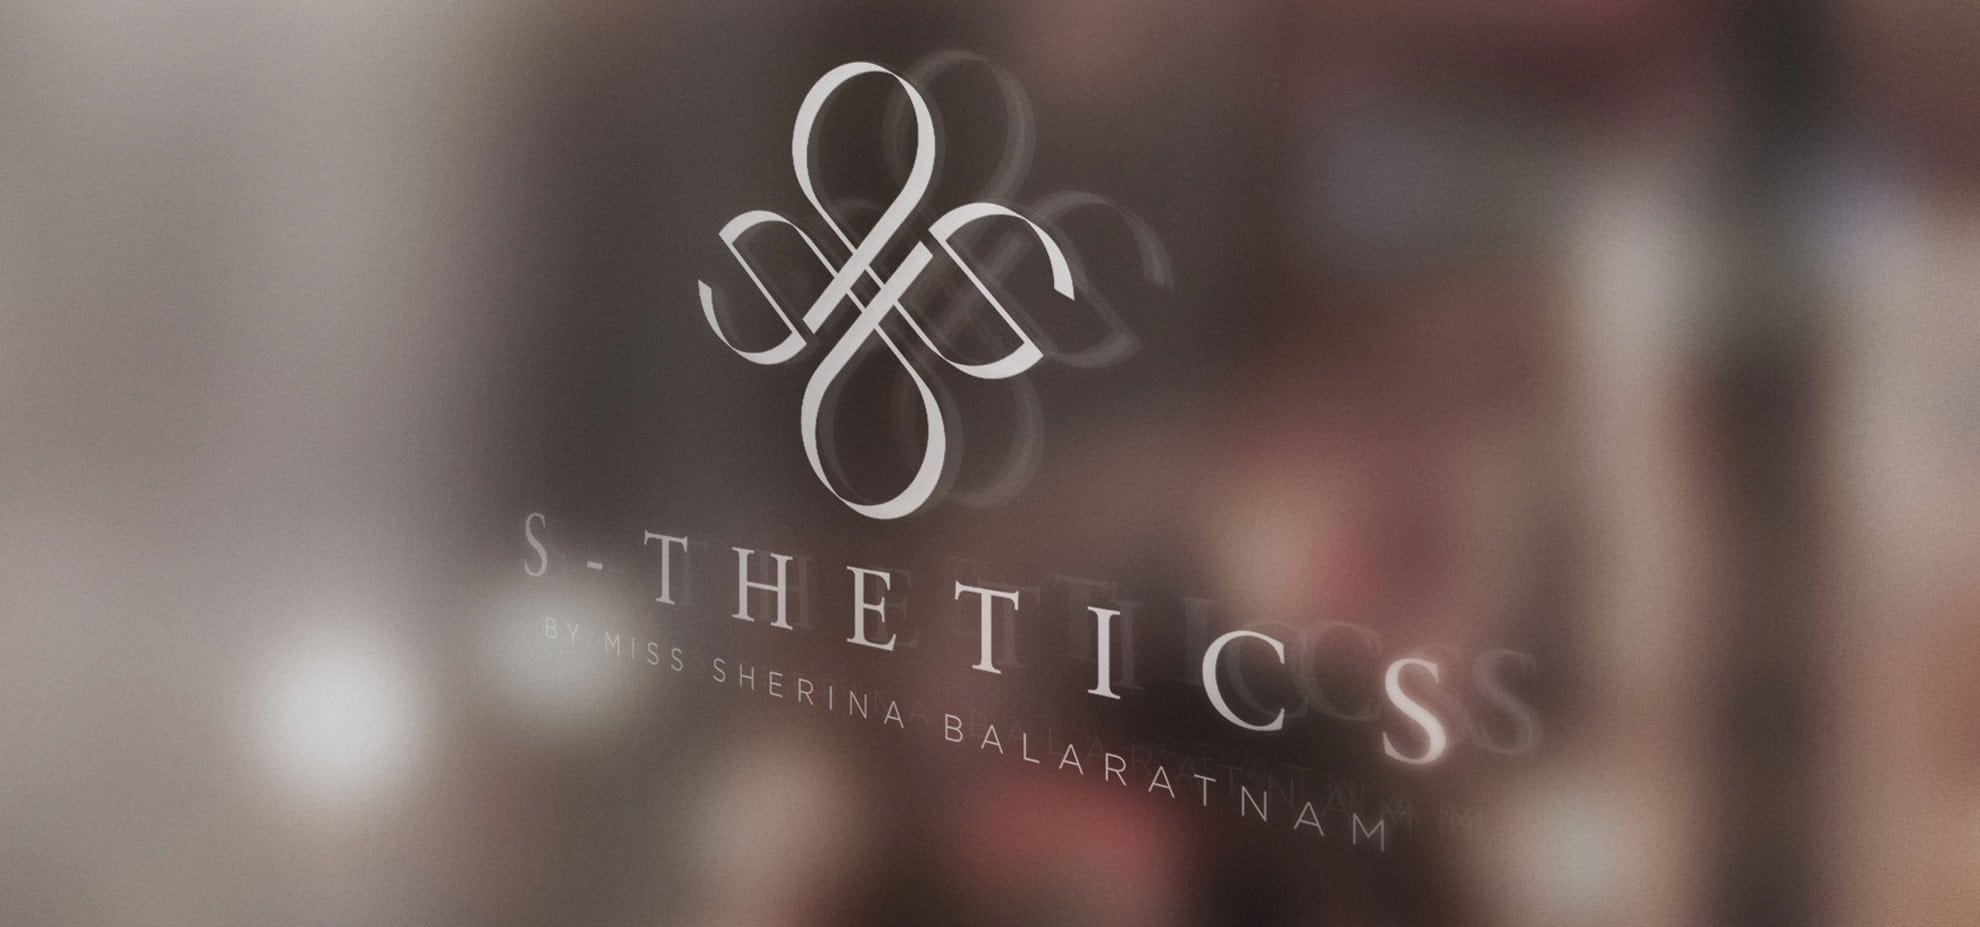 Why choose S-Thetics for your non-surgical treatment?